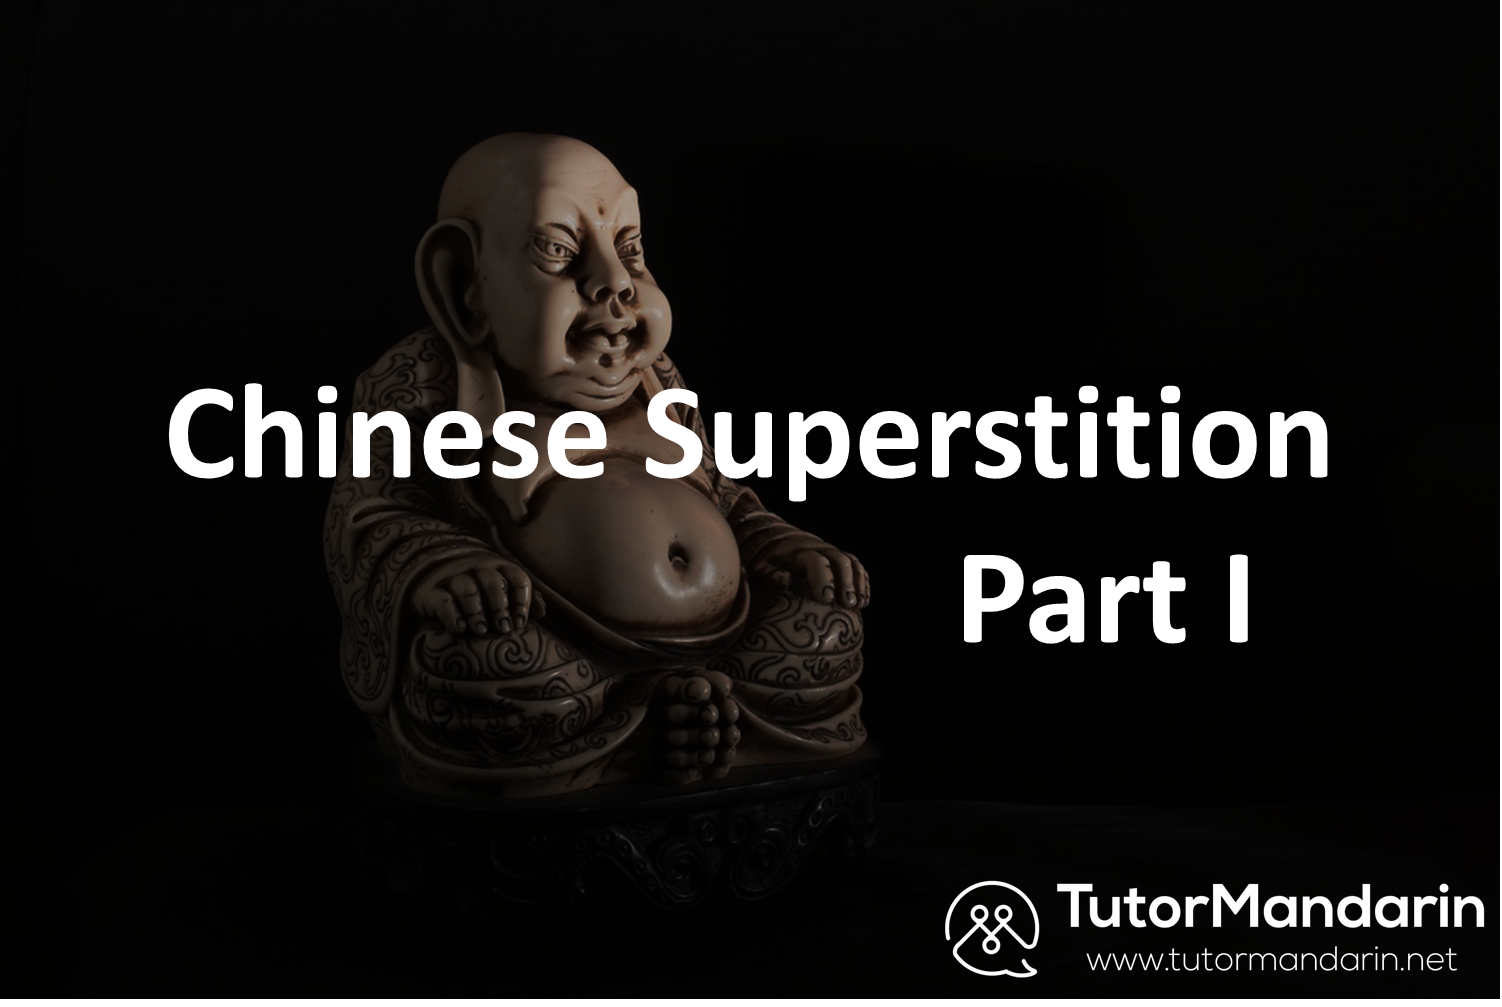 Chinese superstition - part I Tutormandarin 1-on-1 professional online lessons